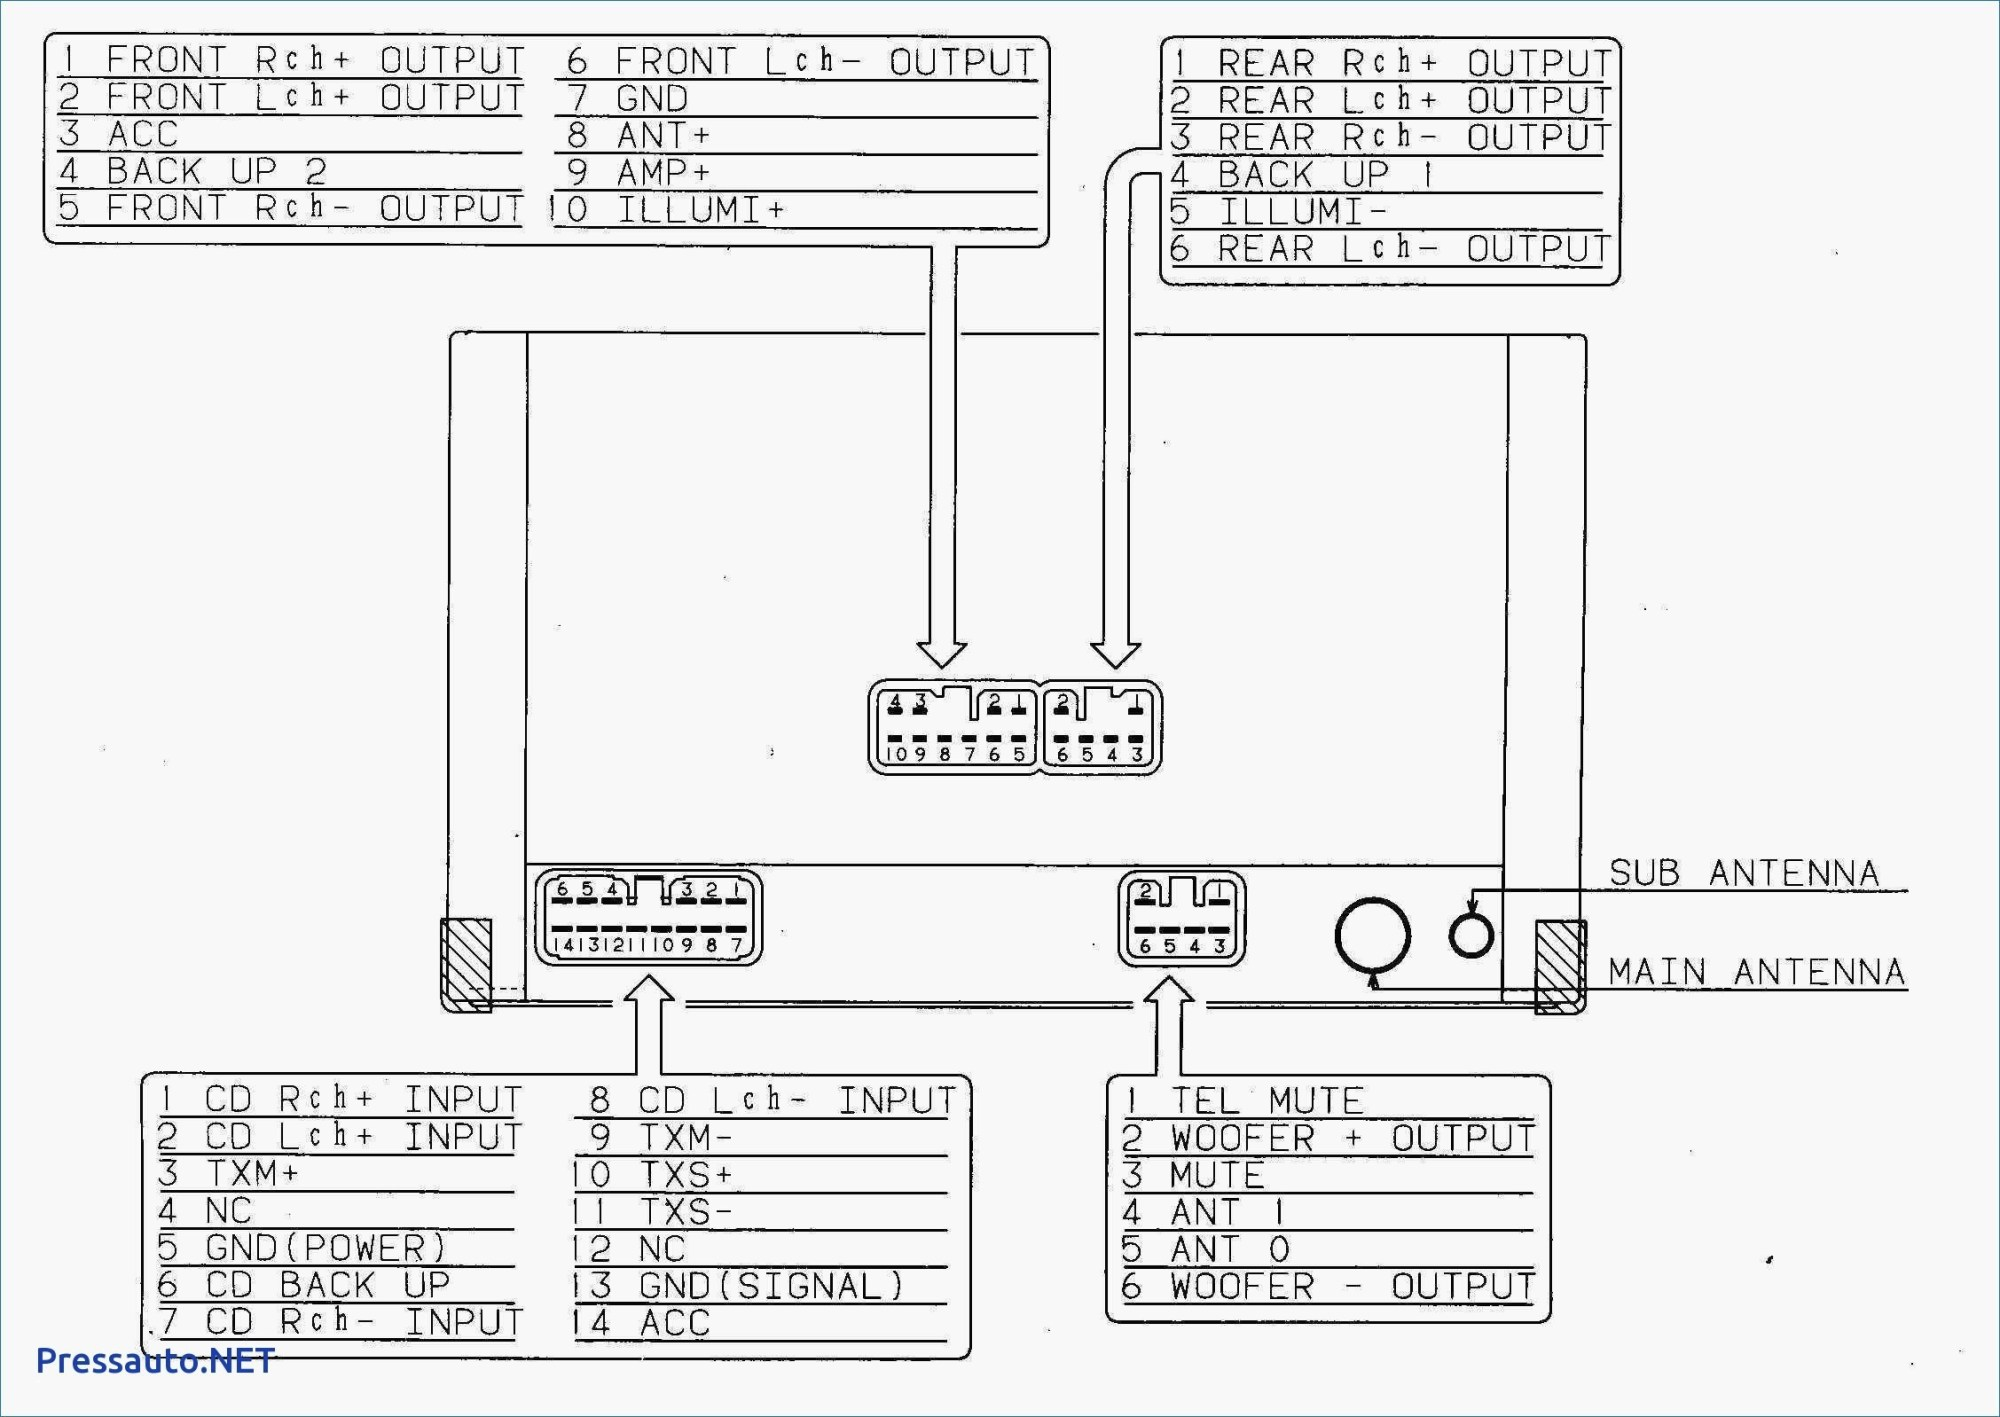 hight resolution of sony xplod car stereo wiring diagram gallery wiring diagram sample rh faceitsalon com sony radio wiring diagram sony xplod stereo wiring diagram